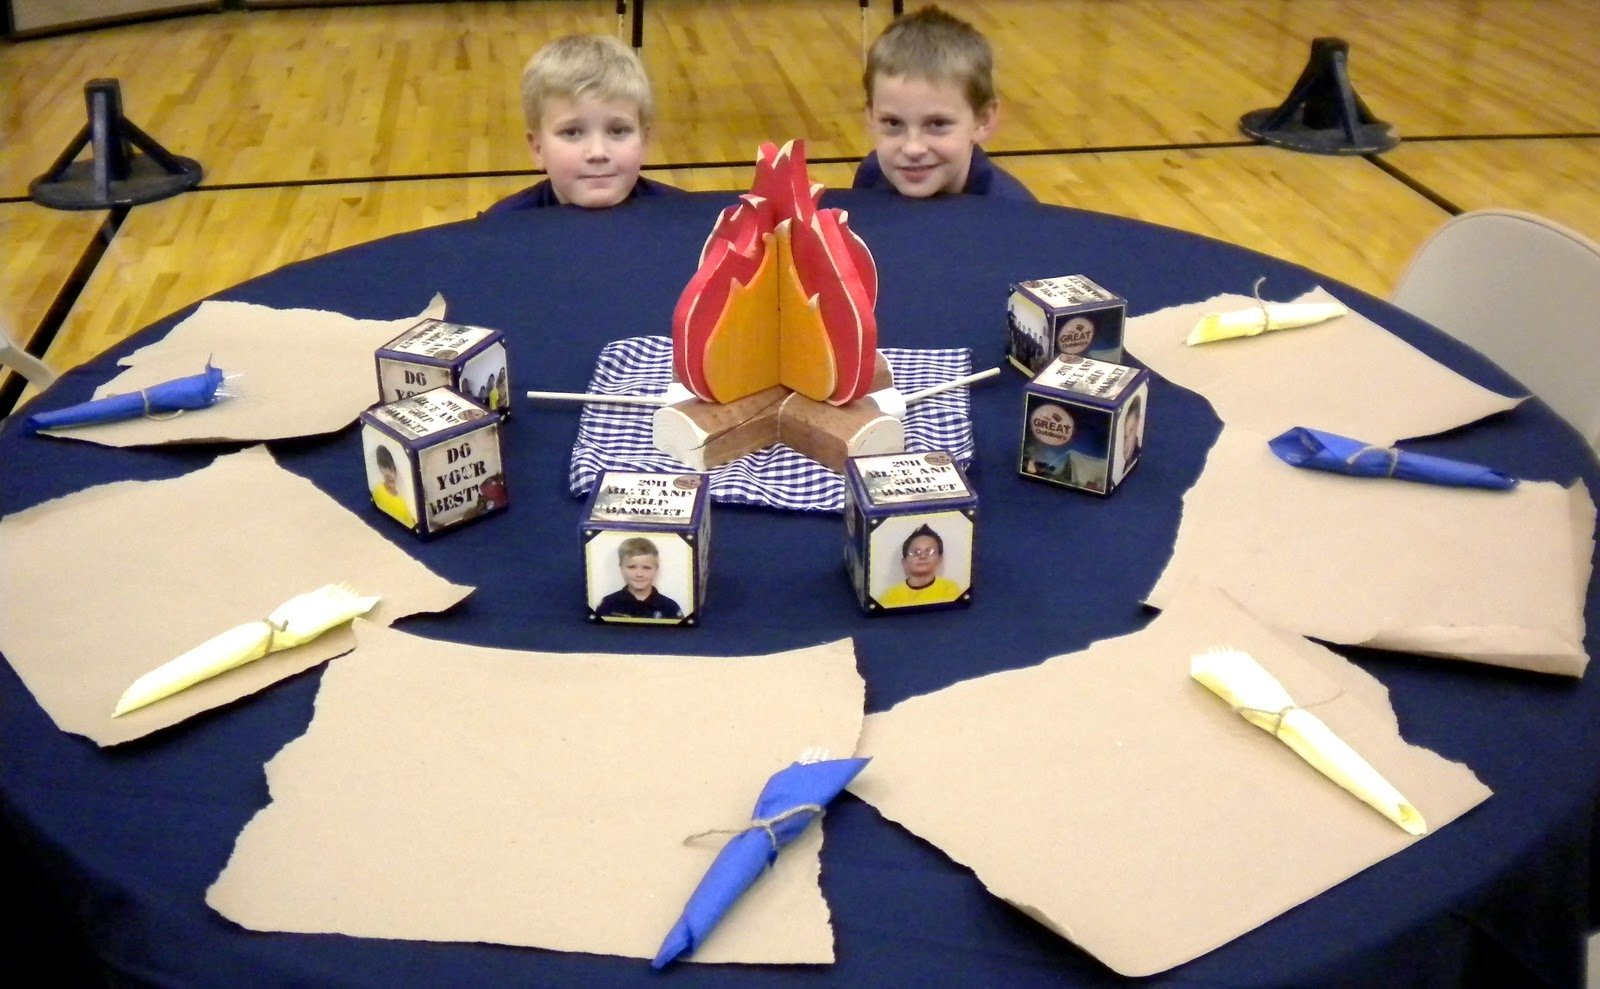 10 Stylish Cub Scout Blue And Gold Banquet Ideas cub scout blue and gold table decoration ideas photograph 1 2020